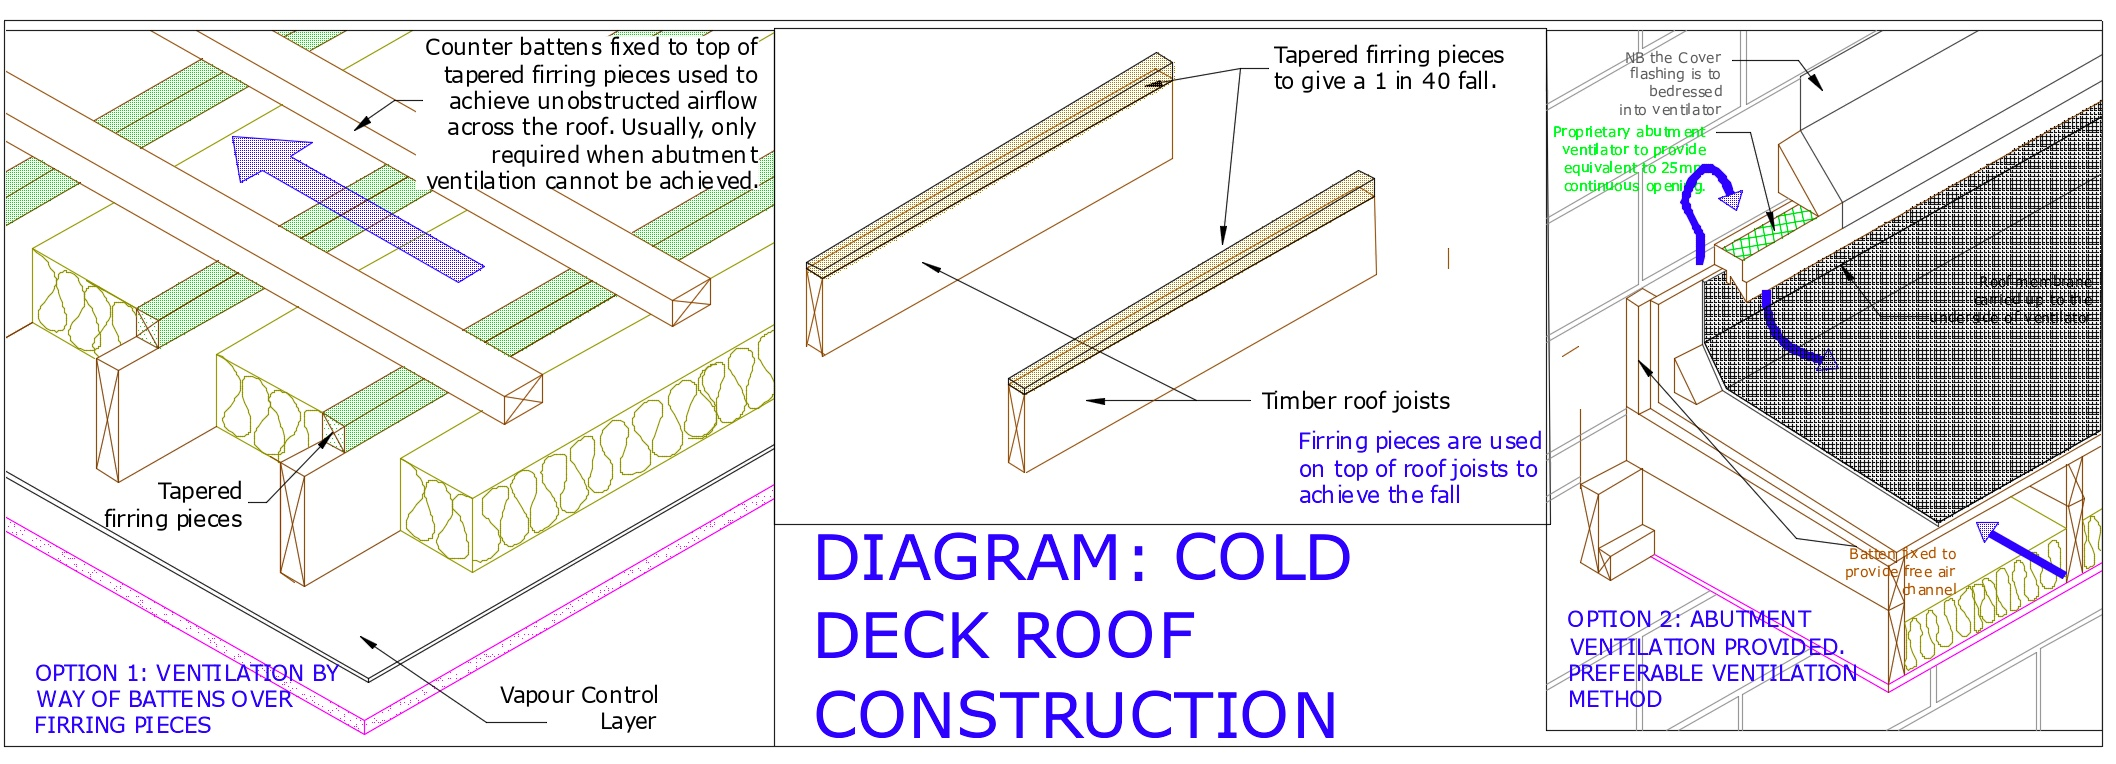 Diagram D77 - Typical cold deck roof construction with adequate ventilation